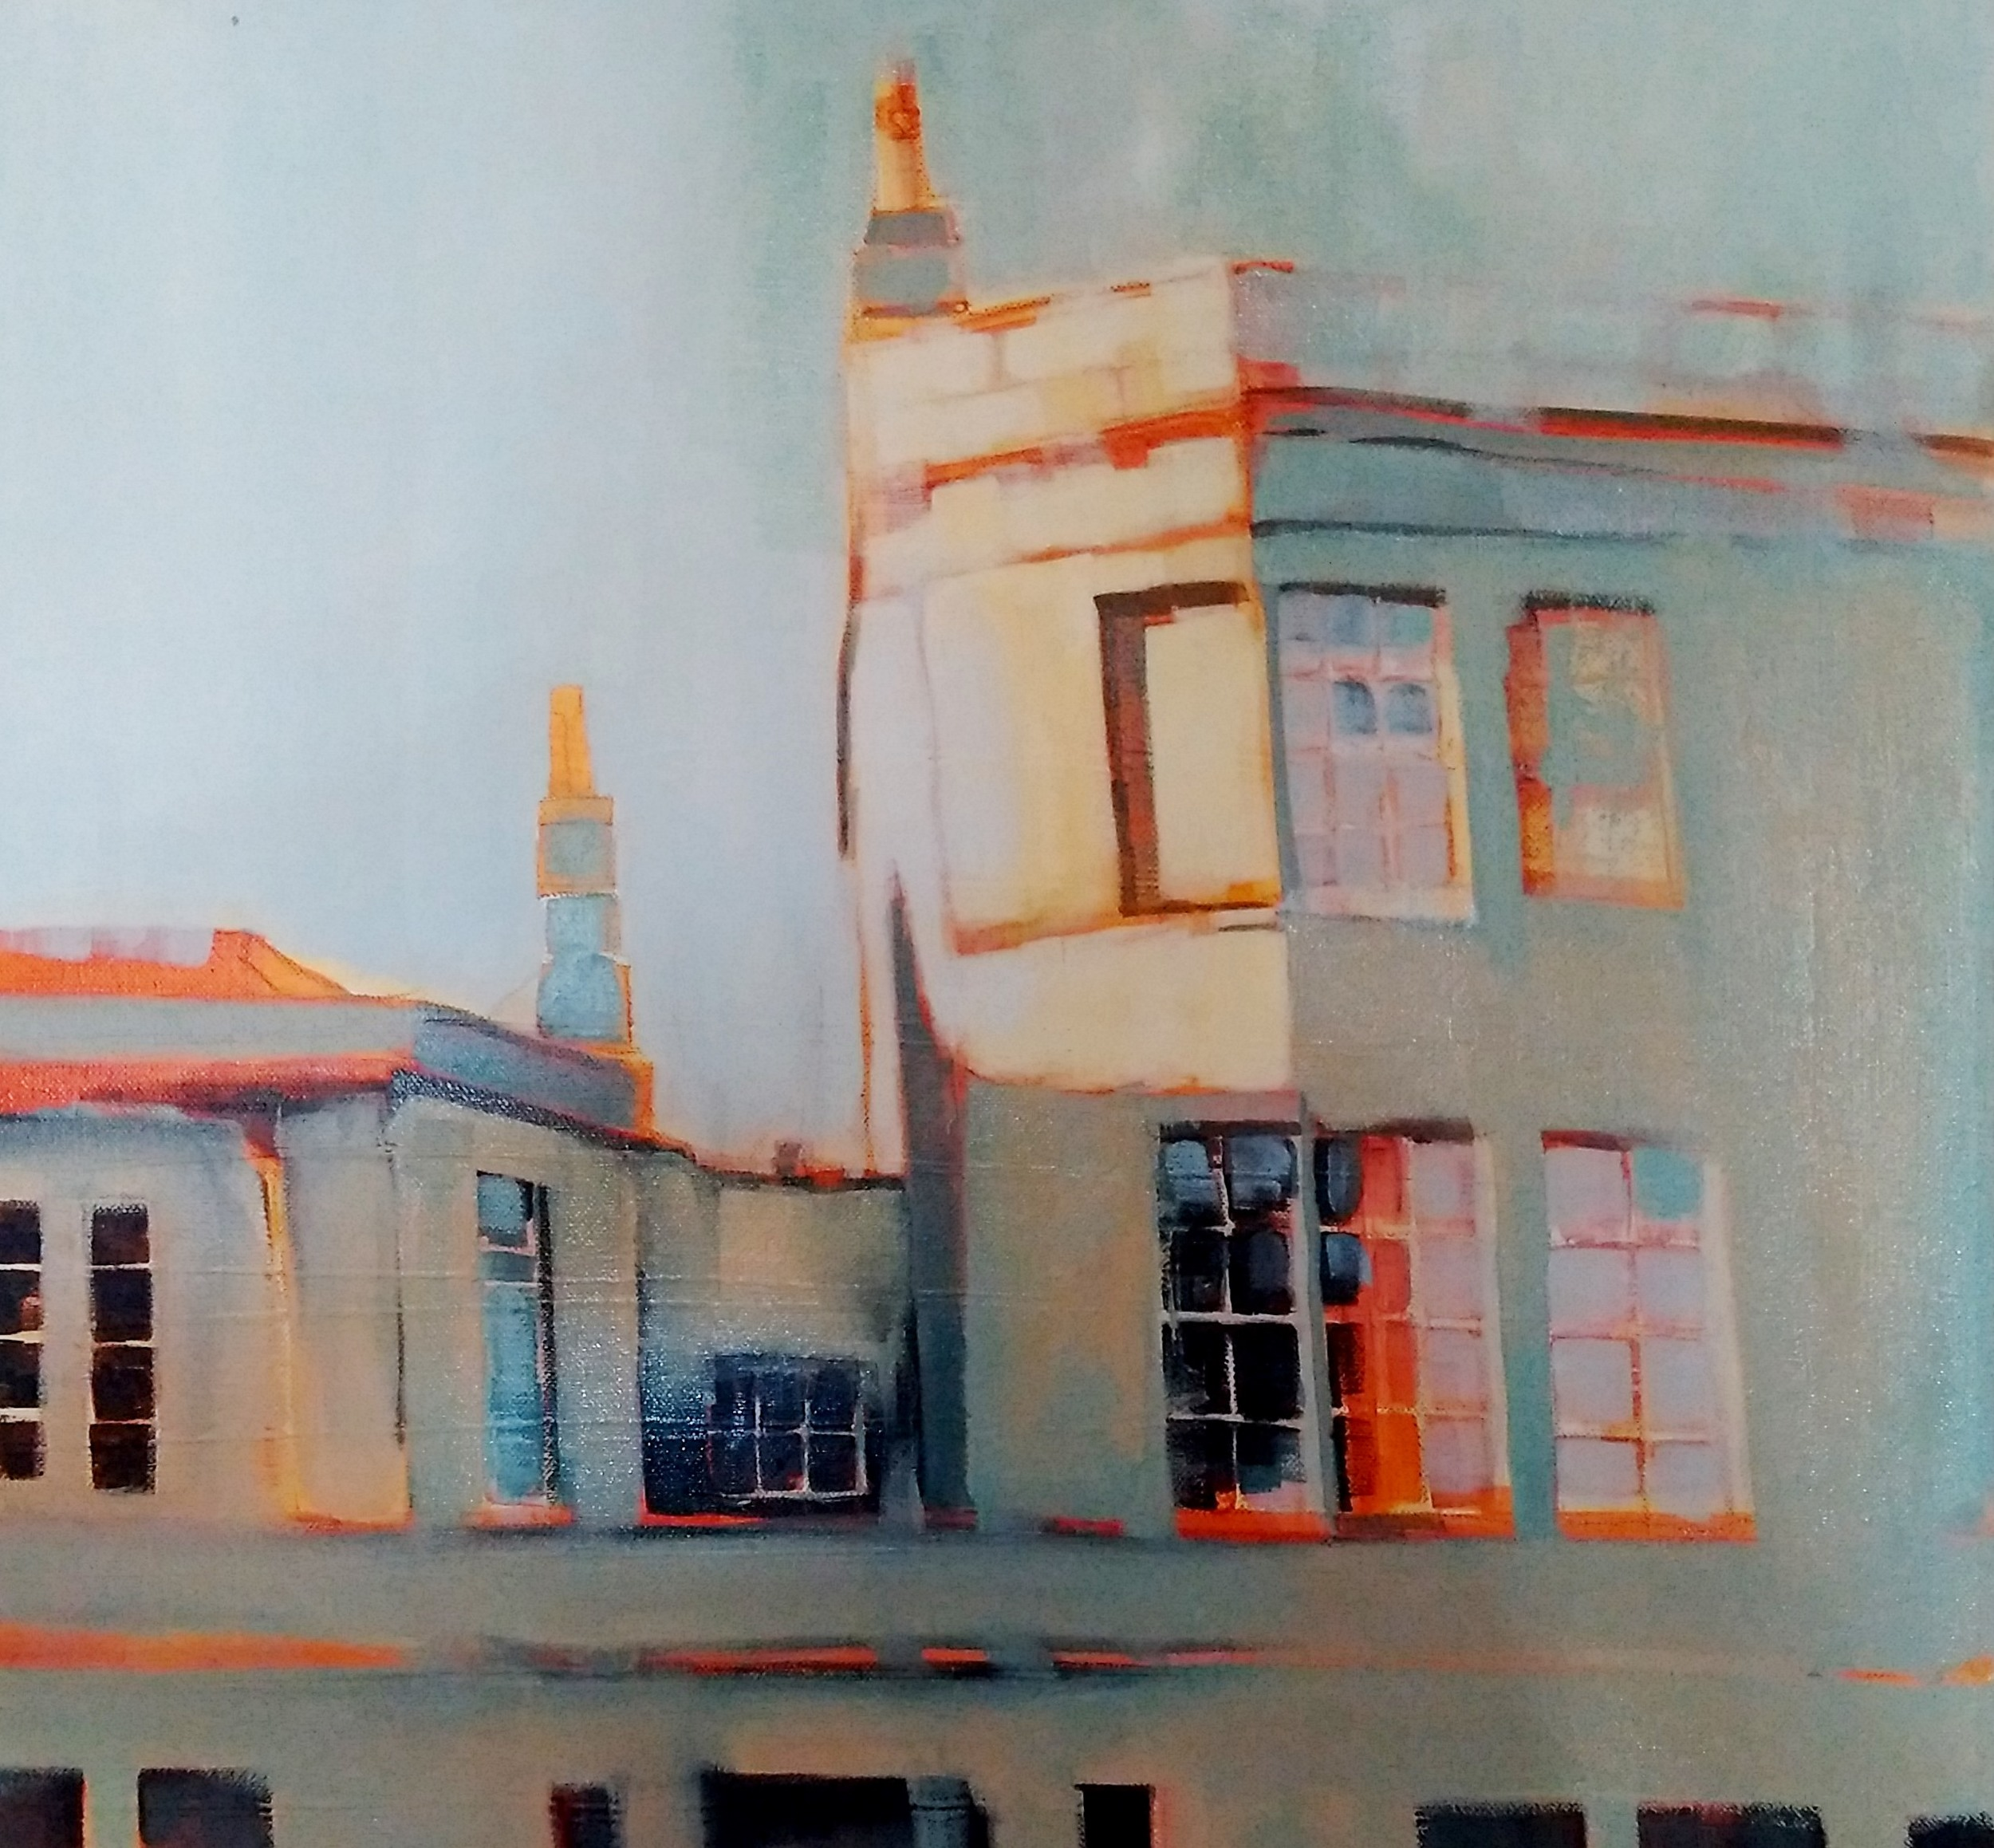 WINTER SUN ON THE BEAUFORT PUB, CITY OF BATH 2016 oil on canvas 60 x 75cm